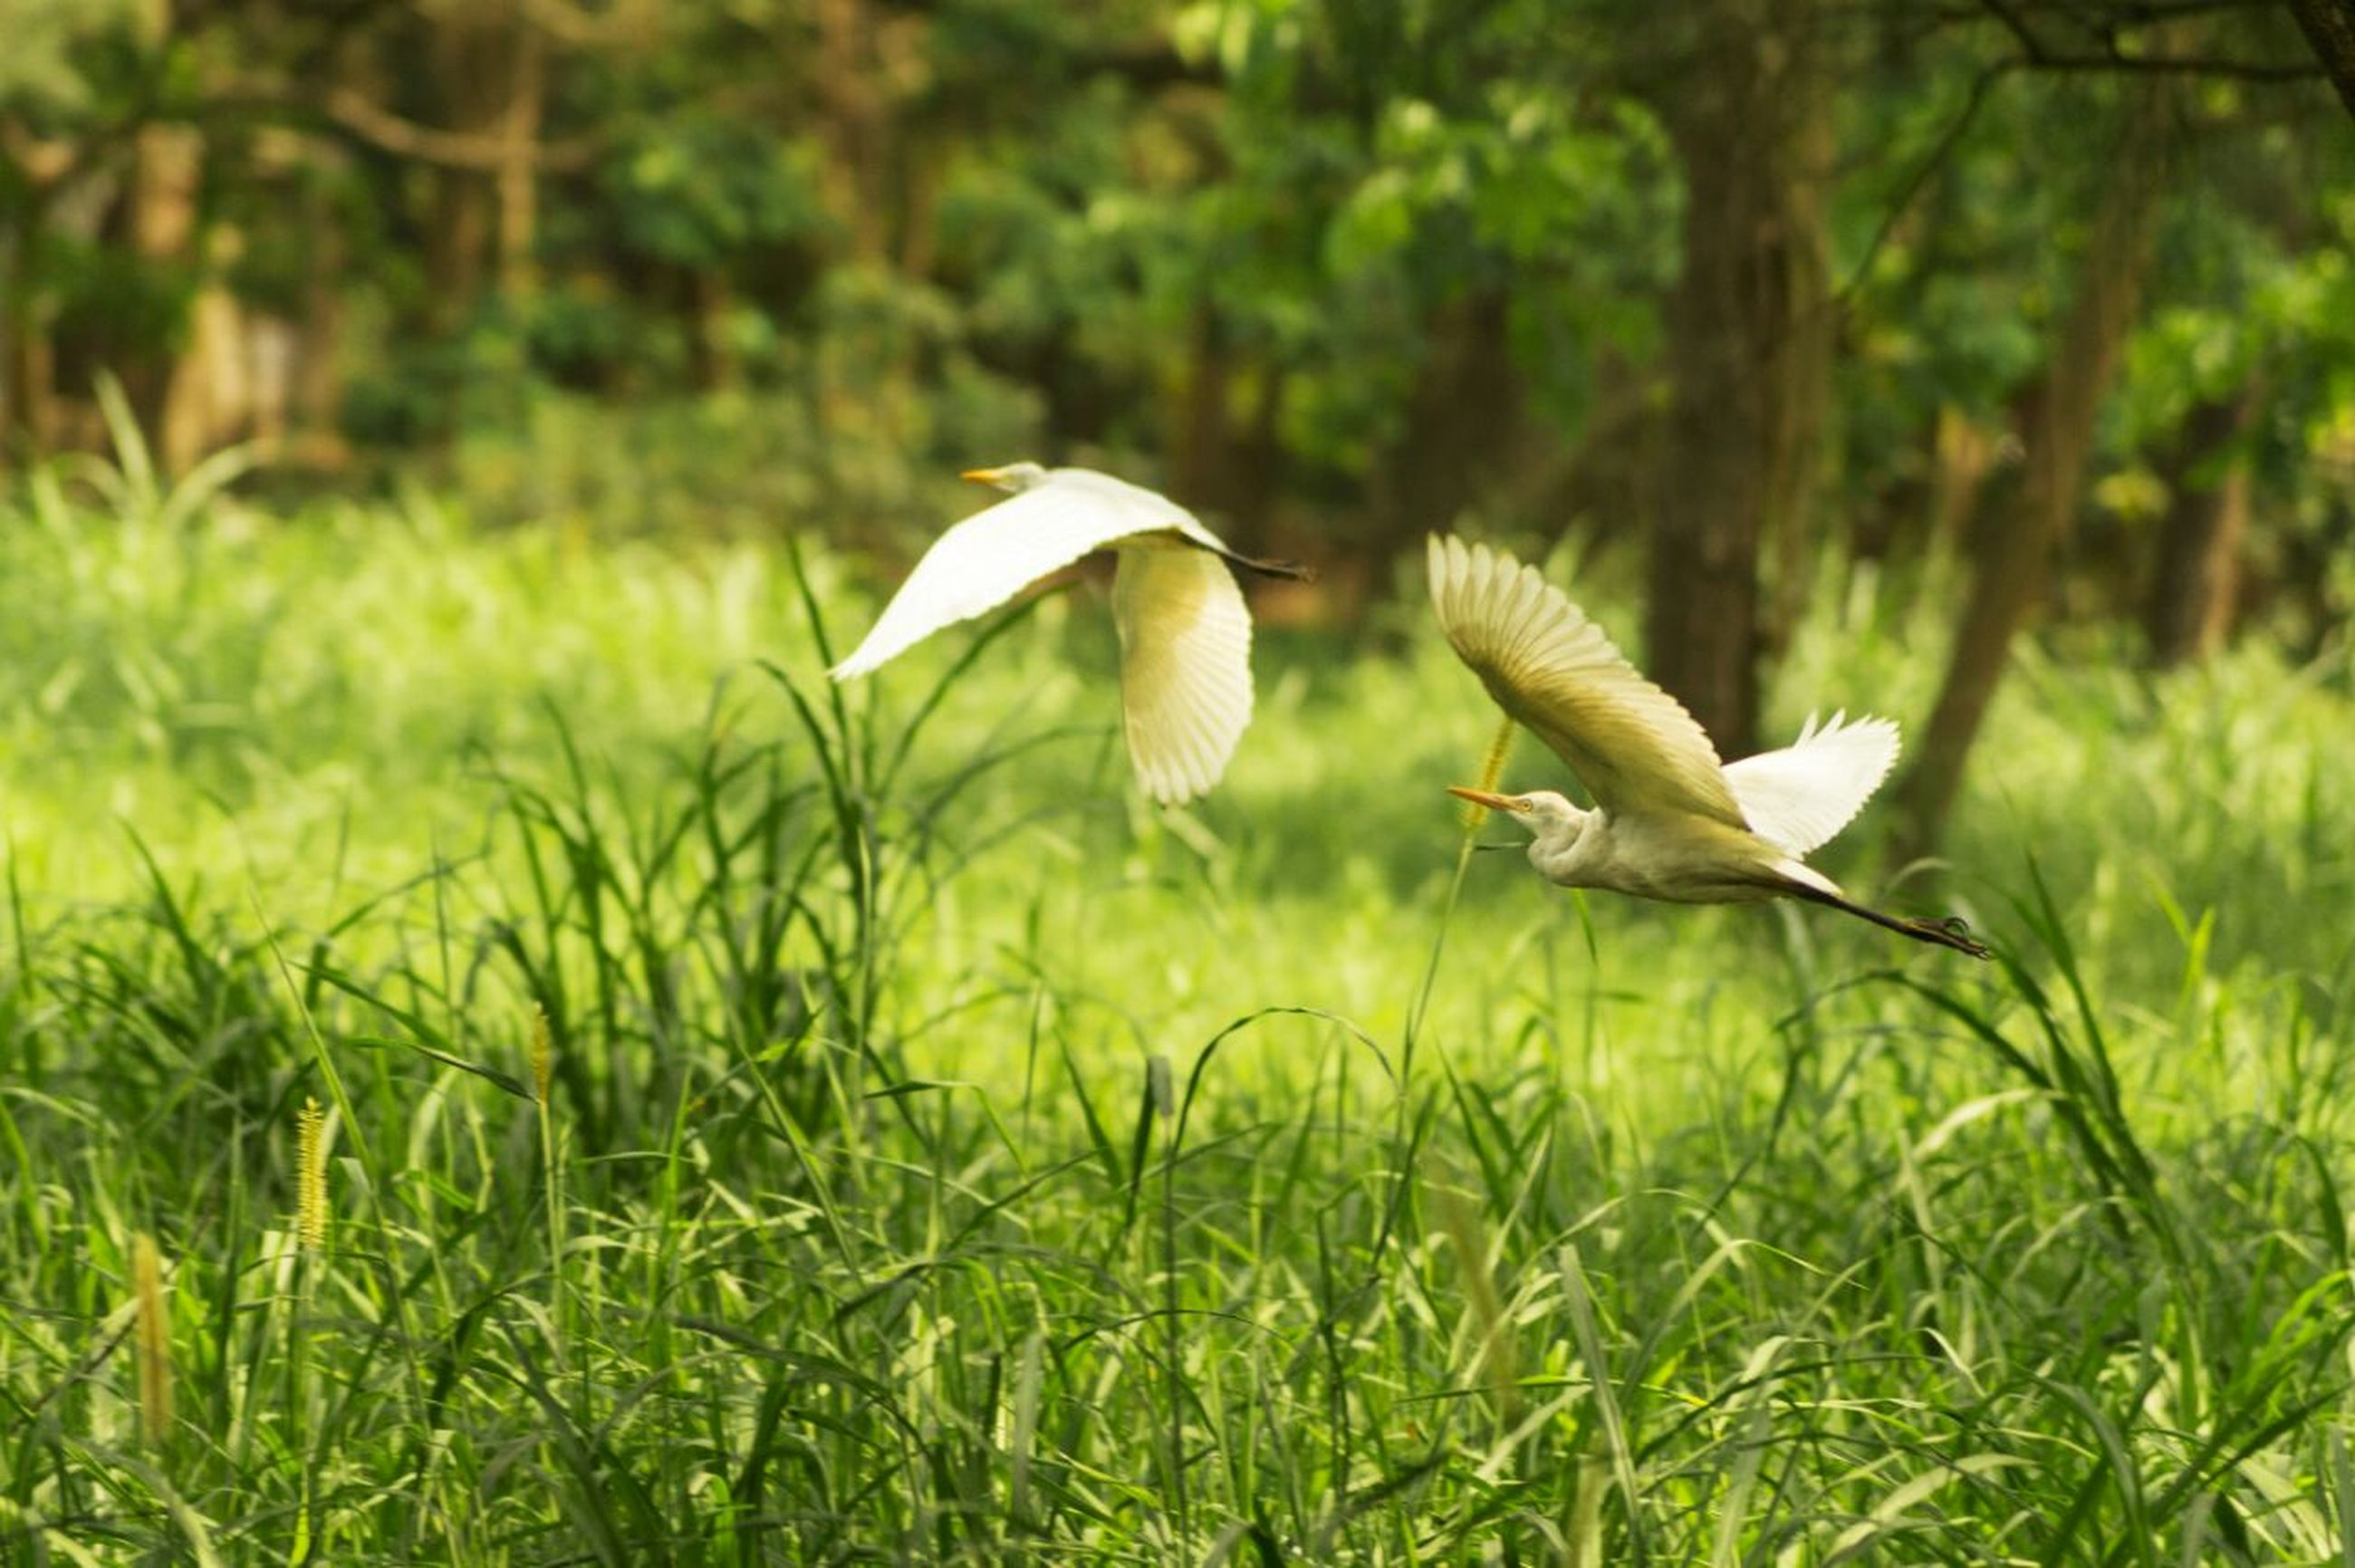 bird, animal themes, animals in the wild, wildlife, grass, flying, spread wings, nature, field, green color, focus on foreground, beauty in nature, side view, full length, growth, outdoors, grassy, one animal, day, no people